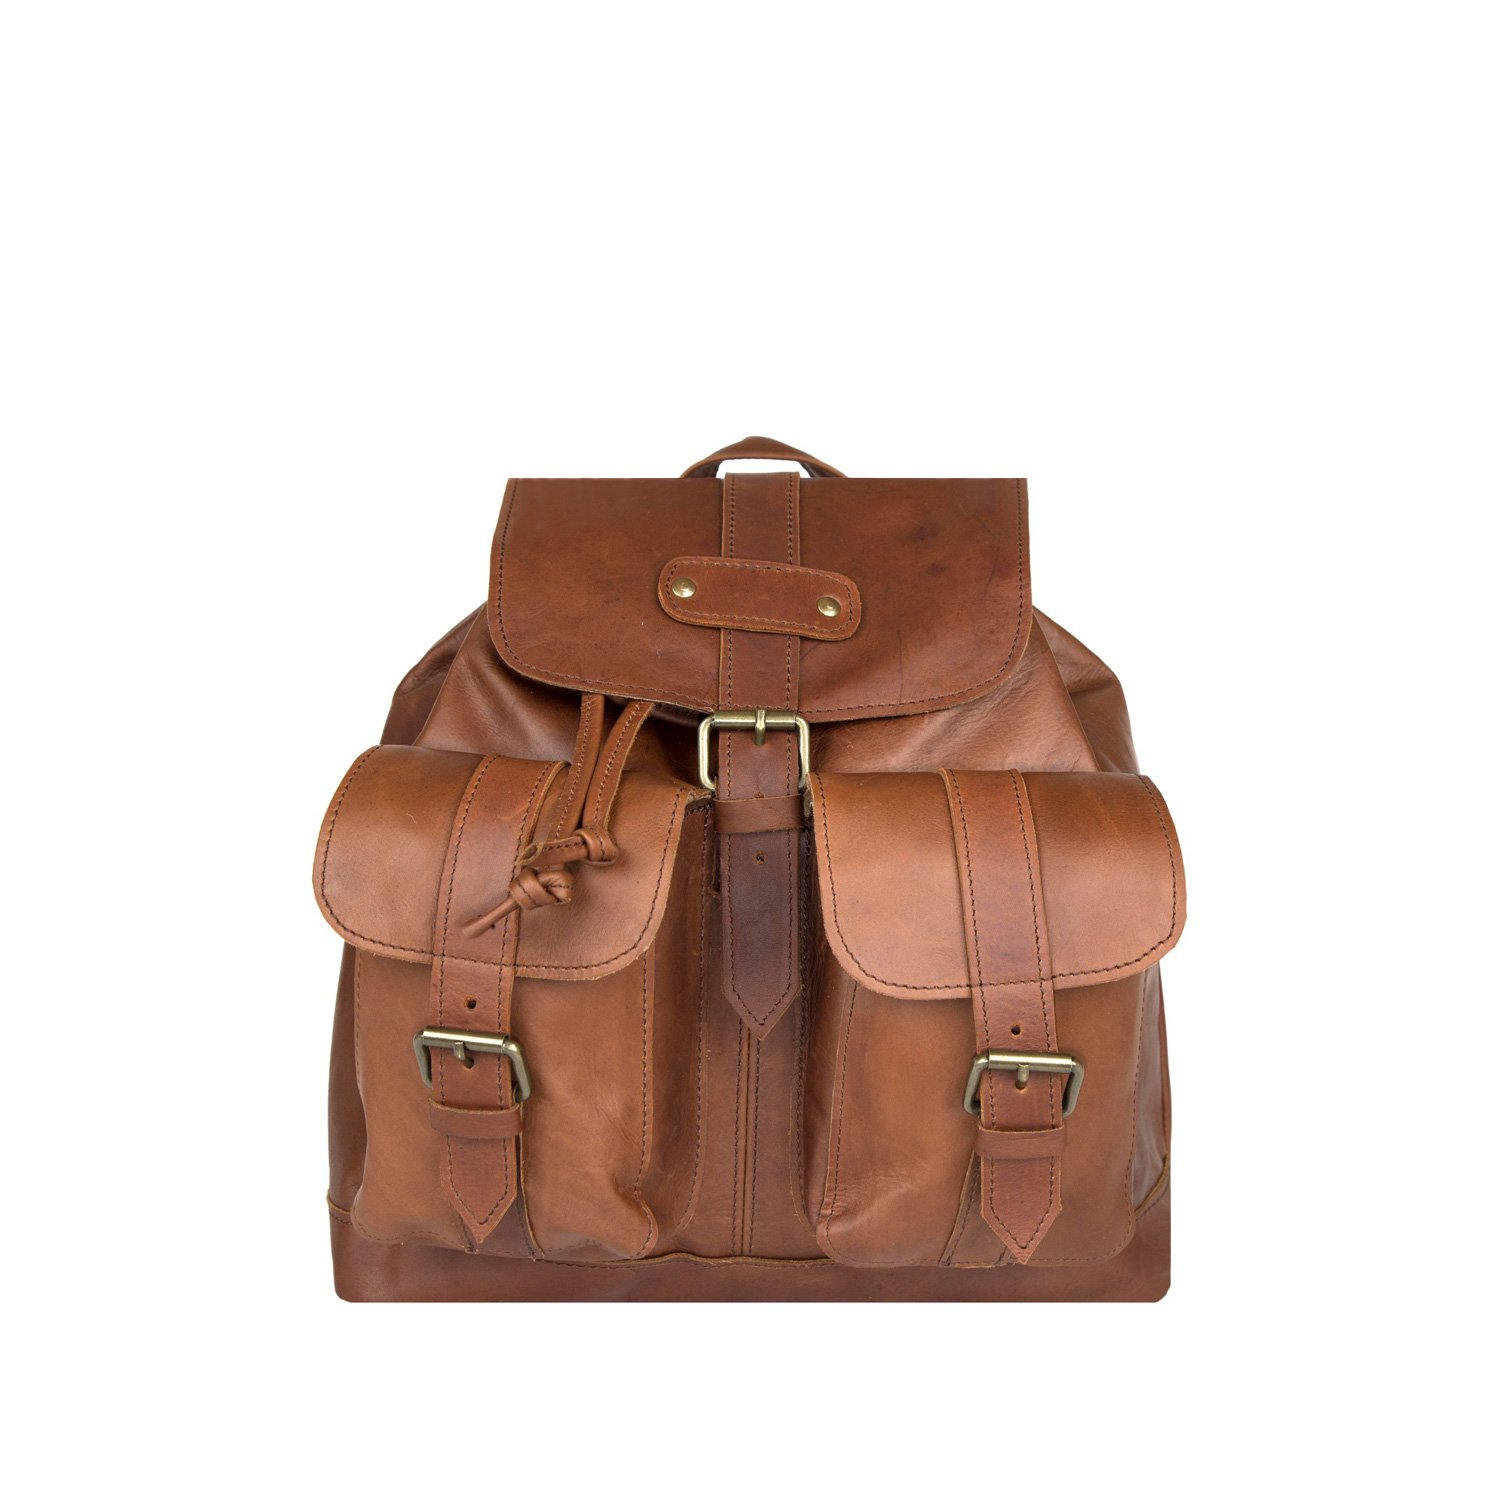 The Nomad ~click to shop